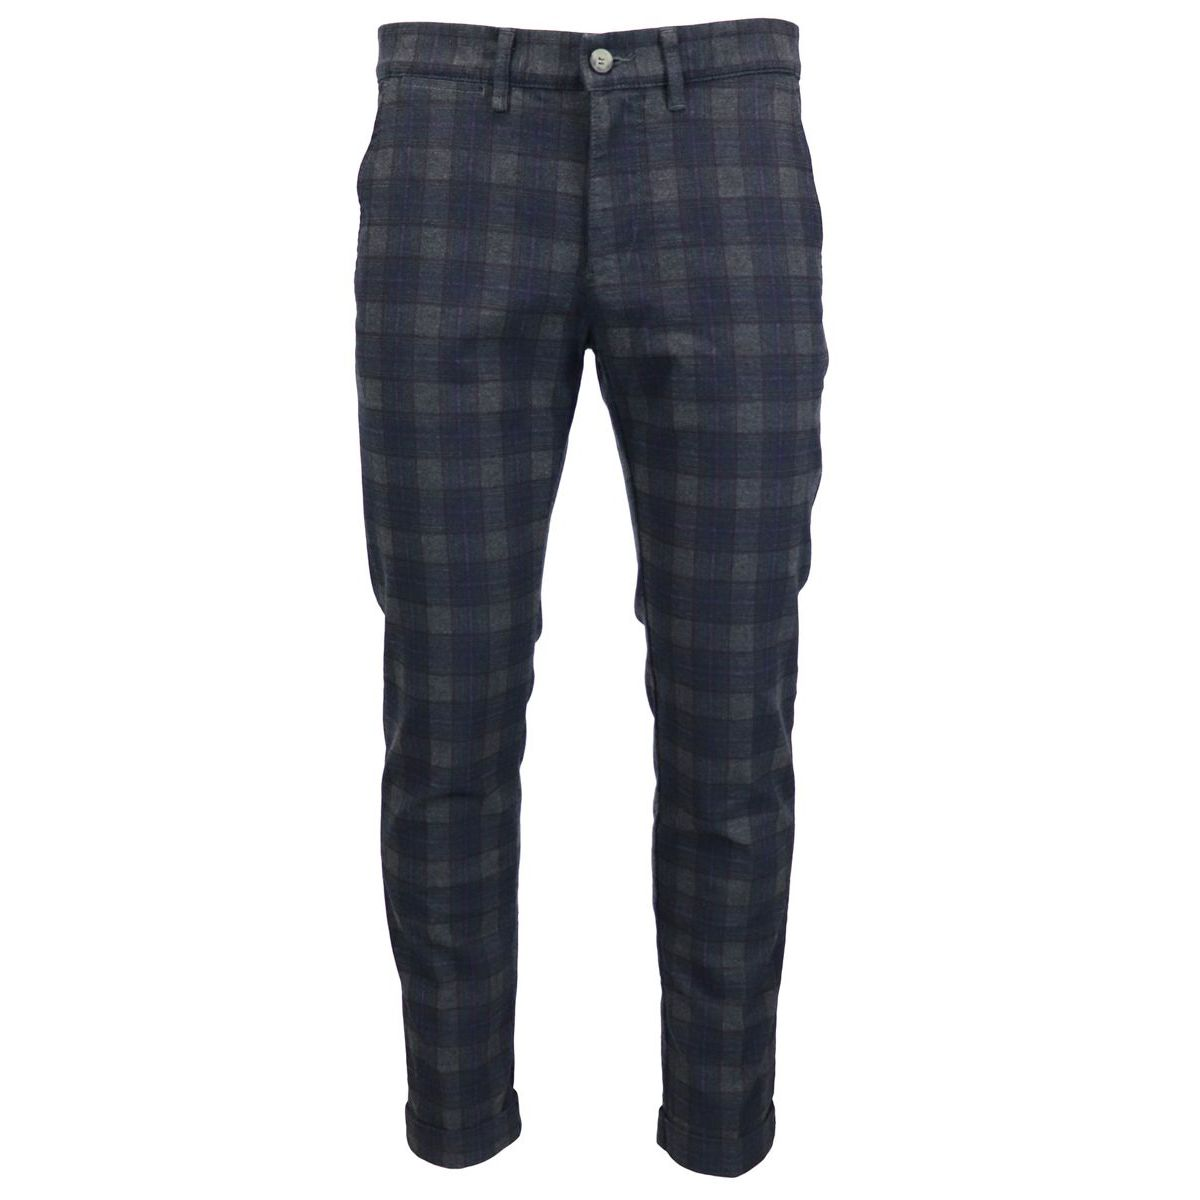 Cotton blend trousers with america pockets and checked pattern Green Jeckerson